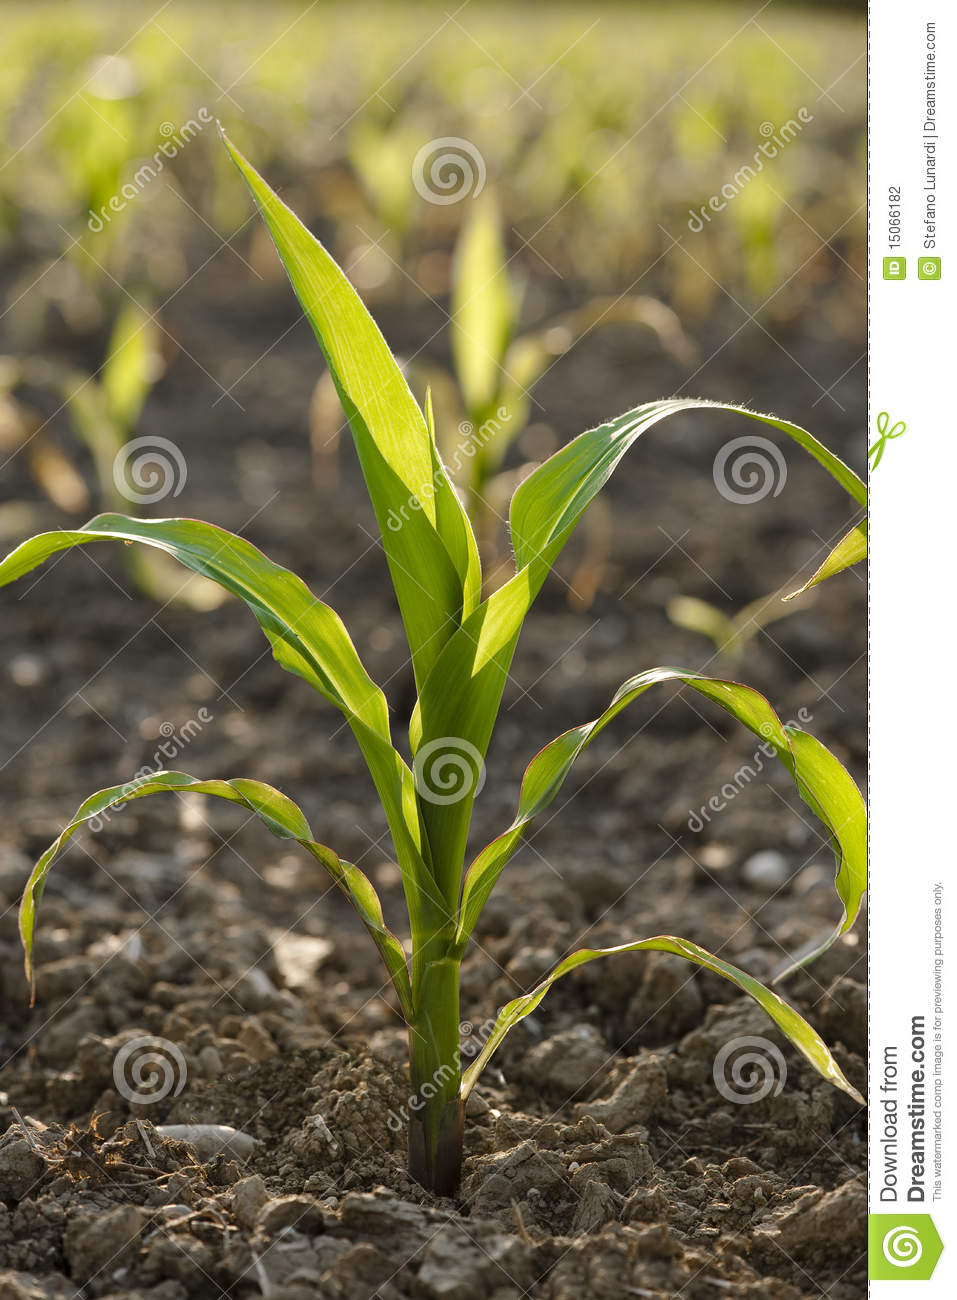 Young Corn Plant Stock Photo Image Of Plowed Vegetable